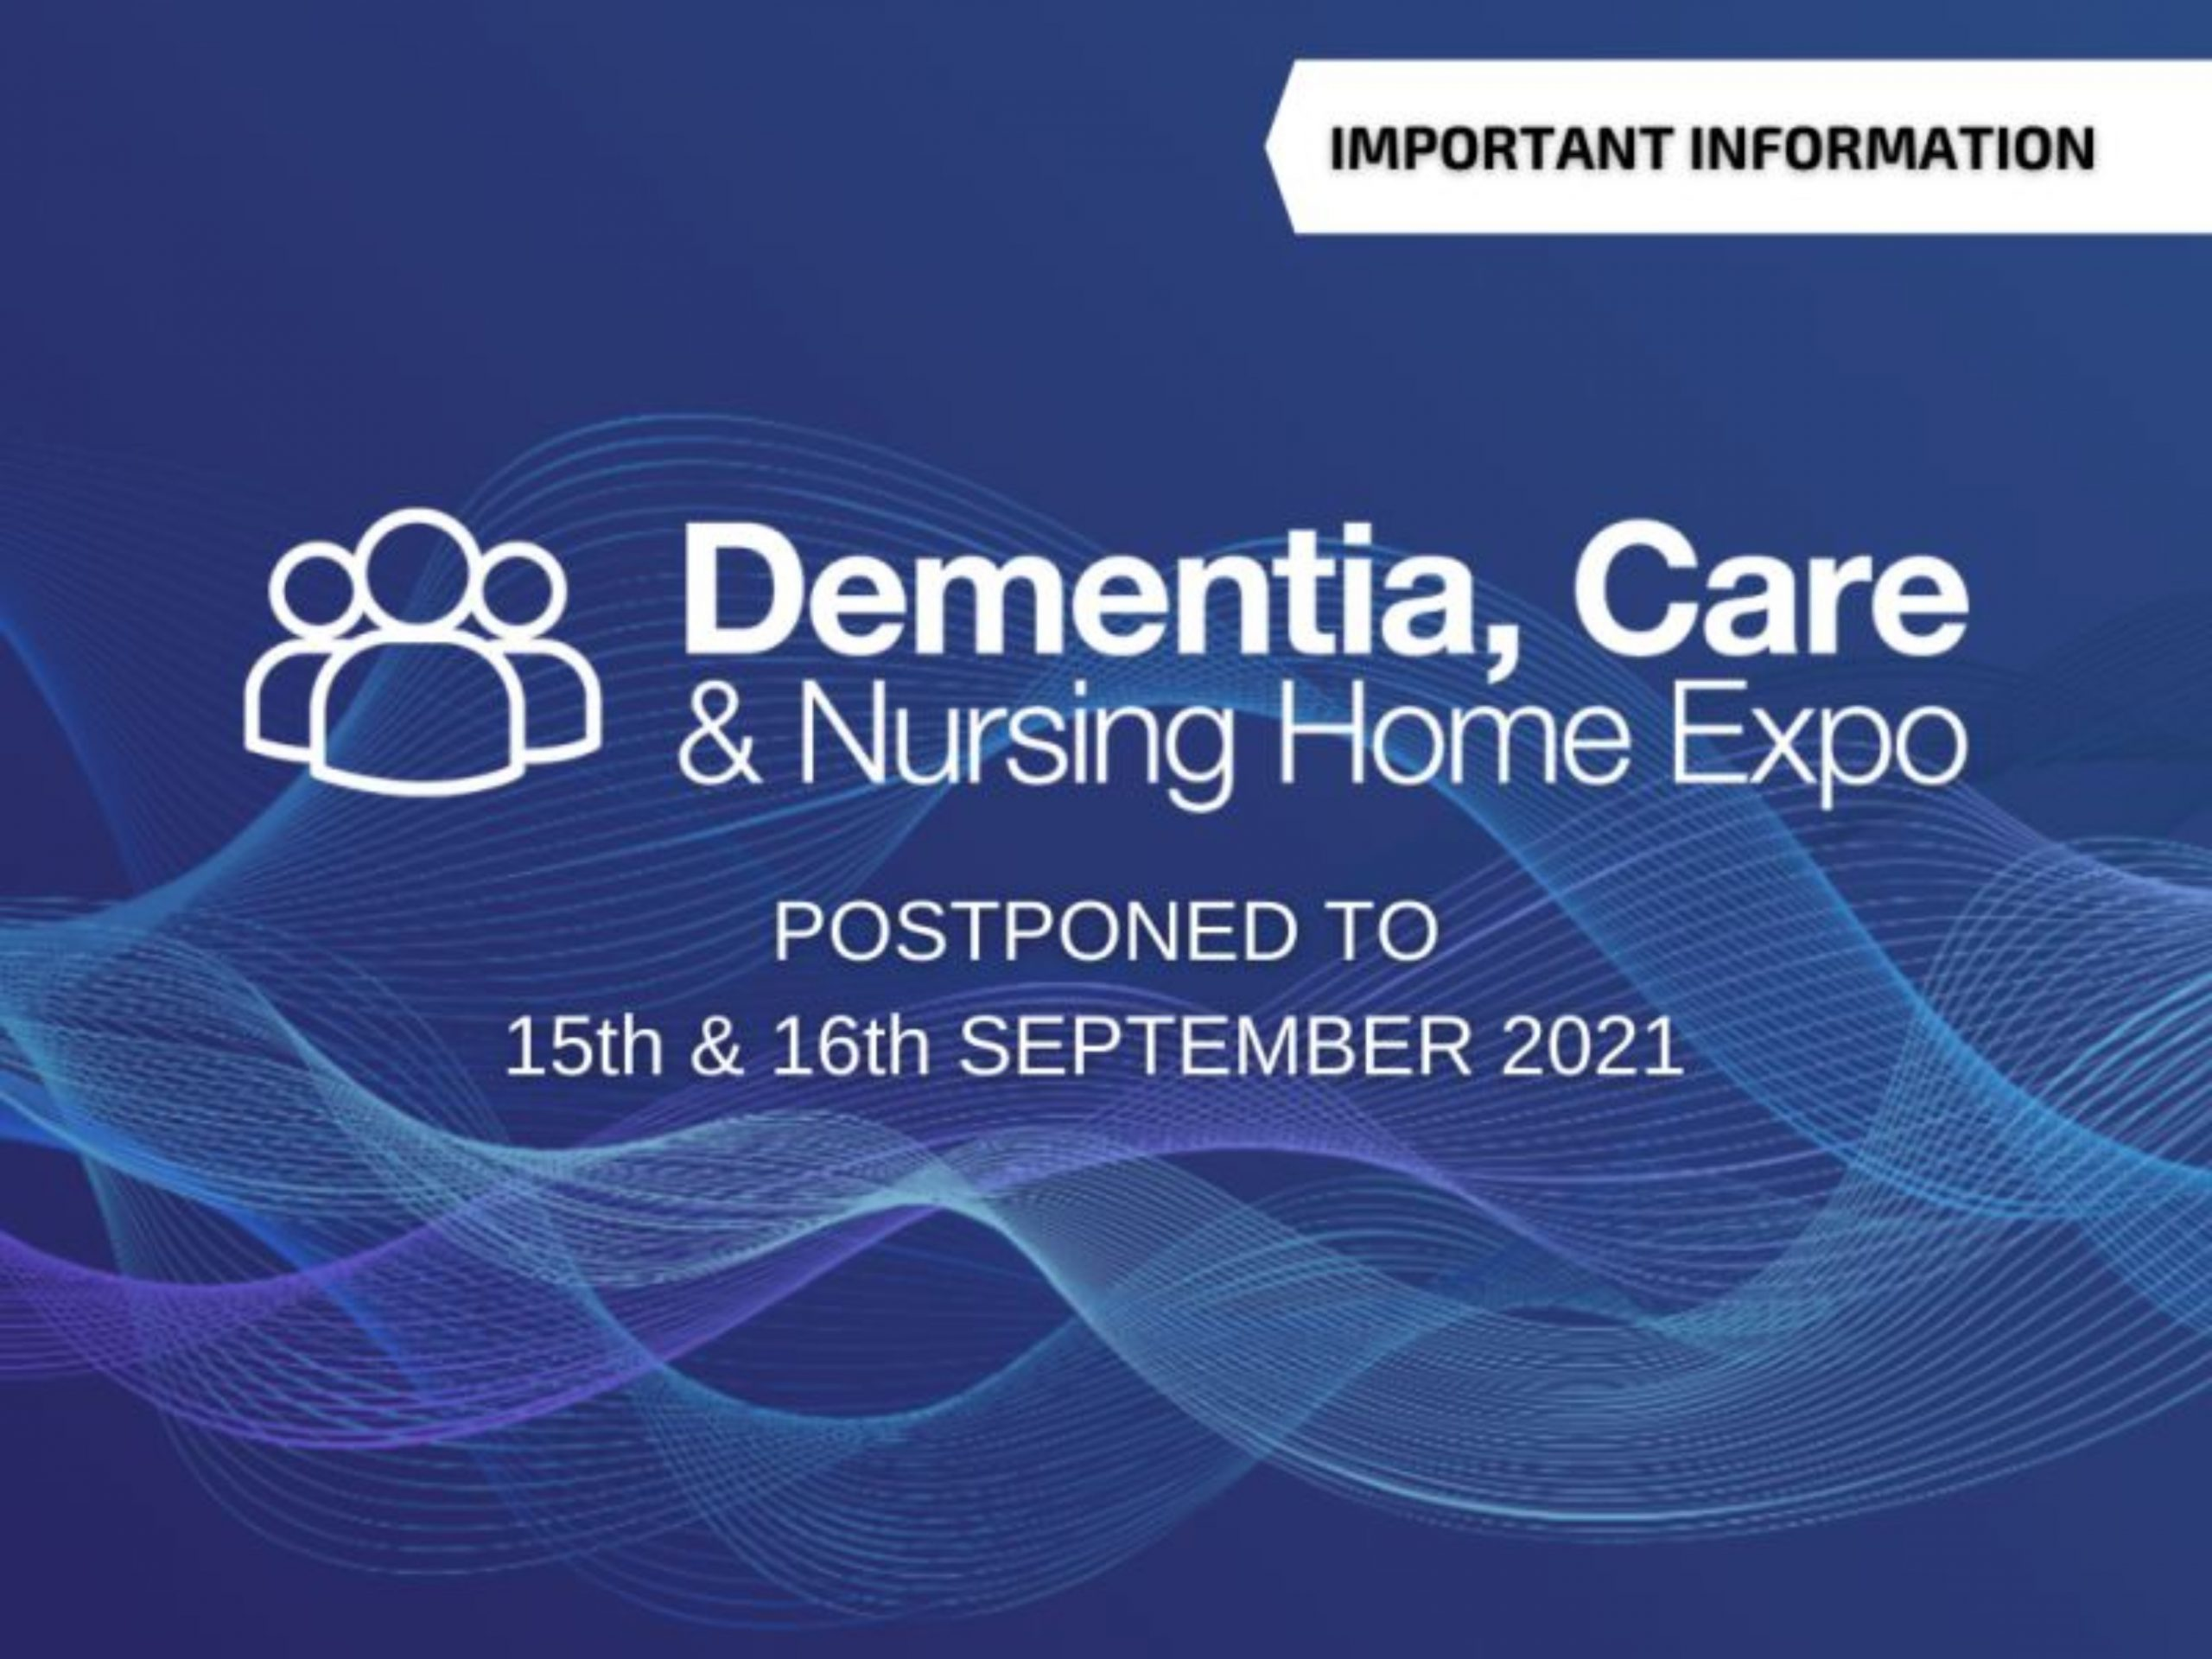 Dementia, Care and Nursing Home Expo Postponed until September 2021